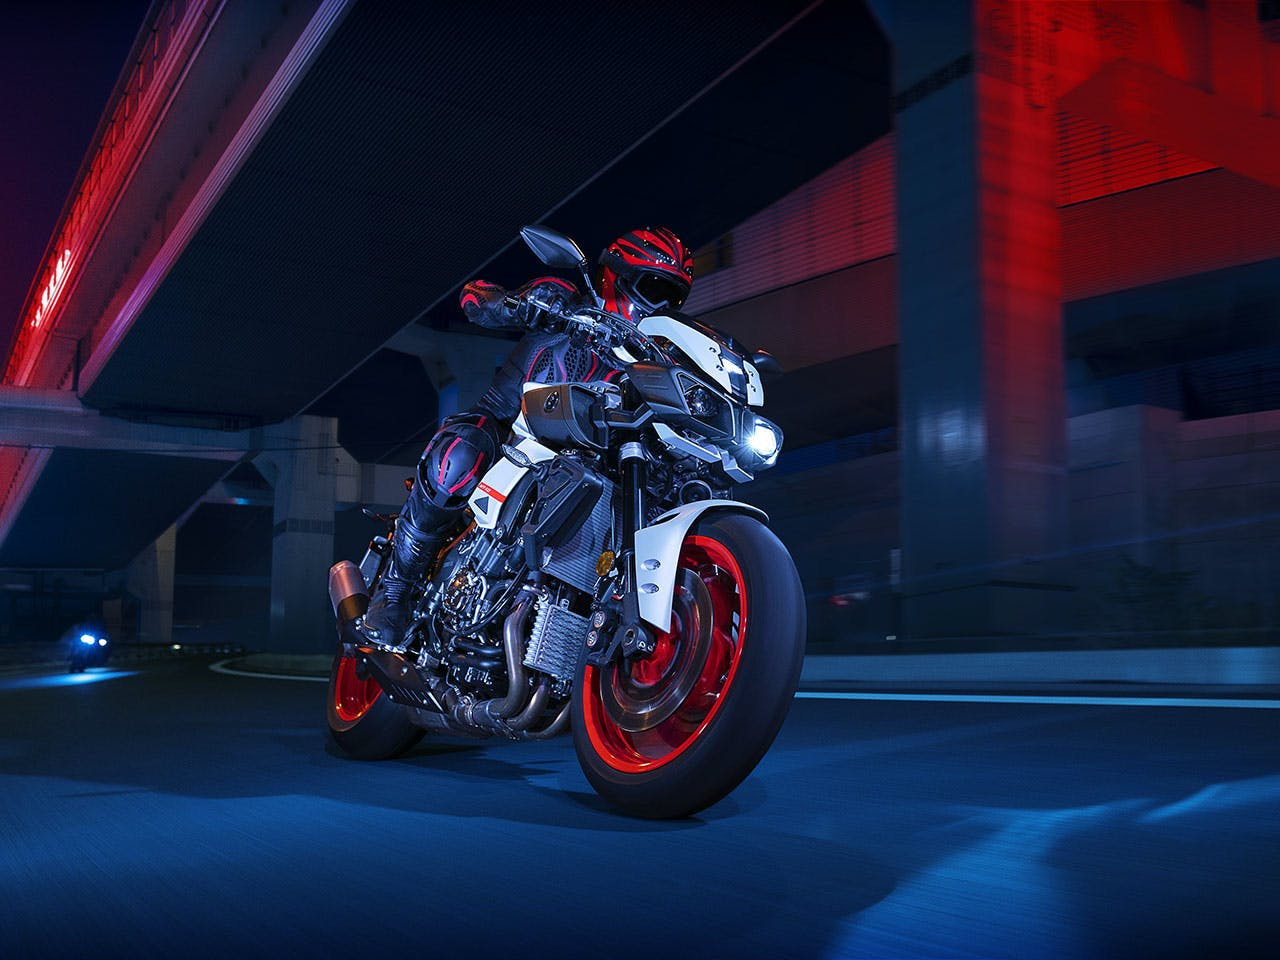 Yamaha MT-10 in on the road